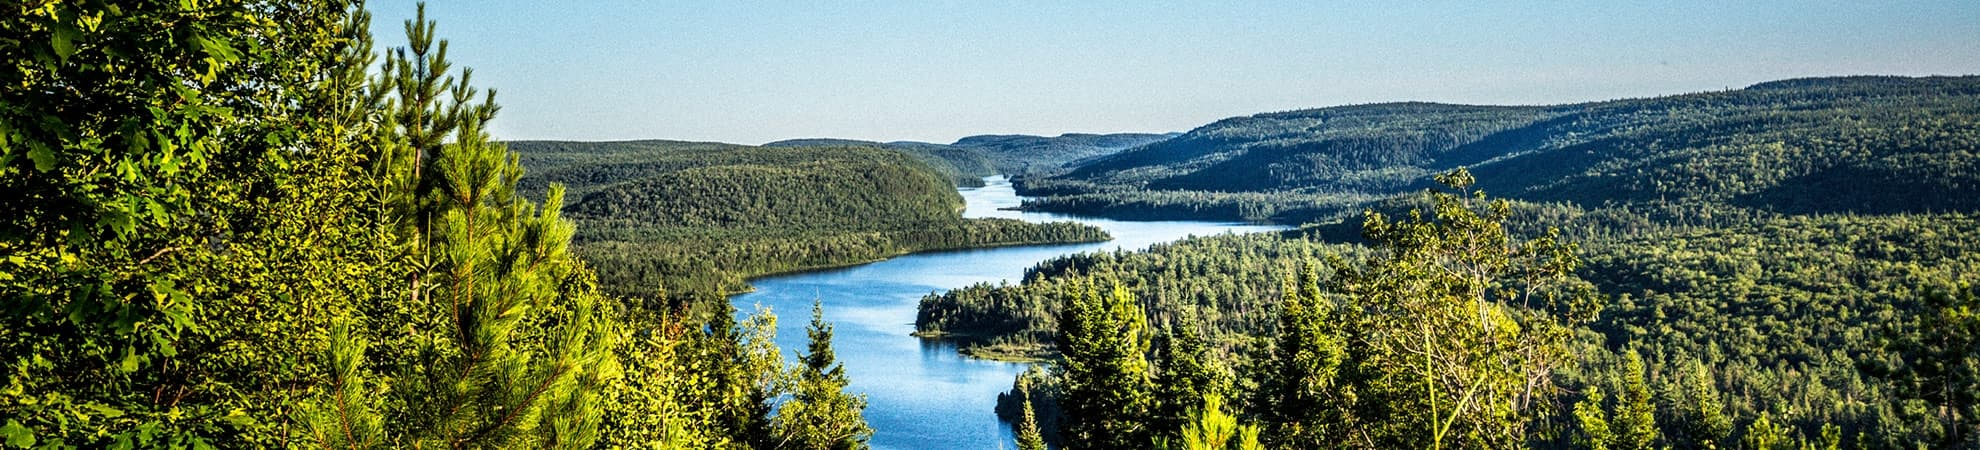 Voyage Mauricie